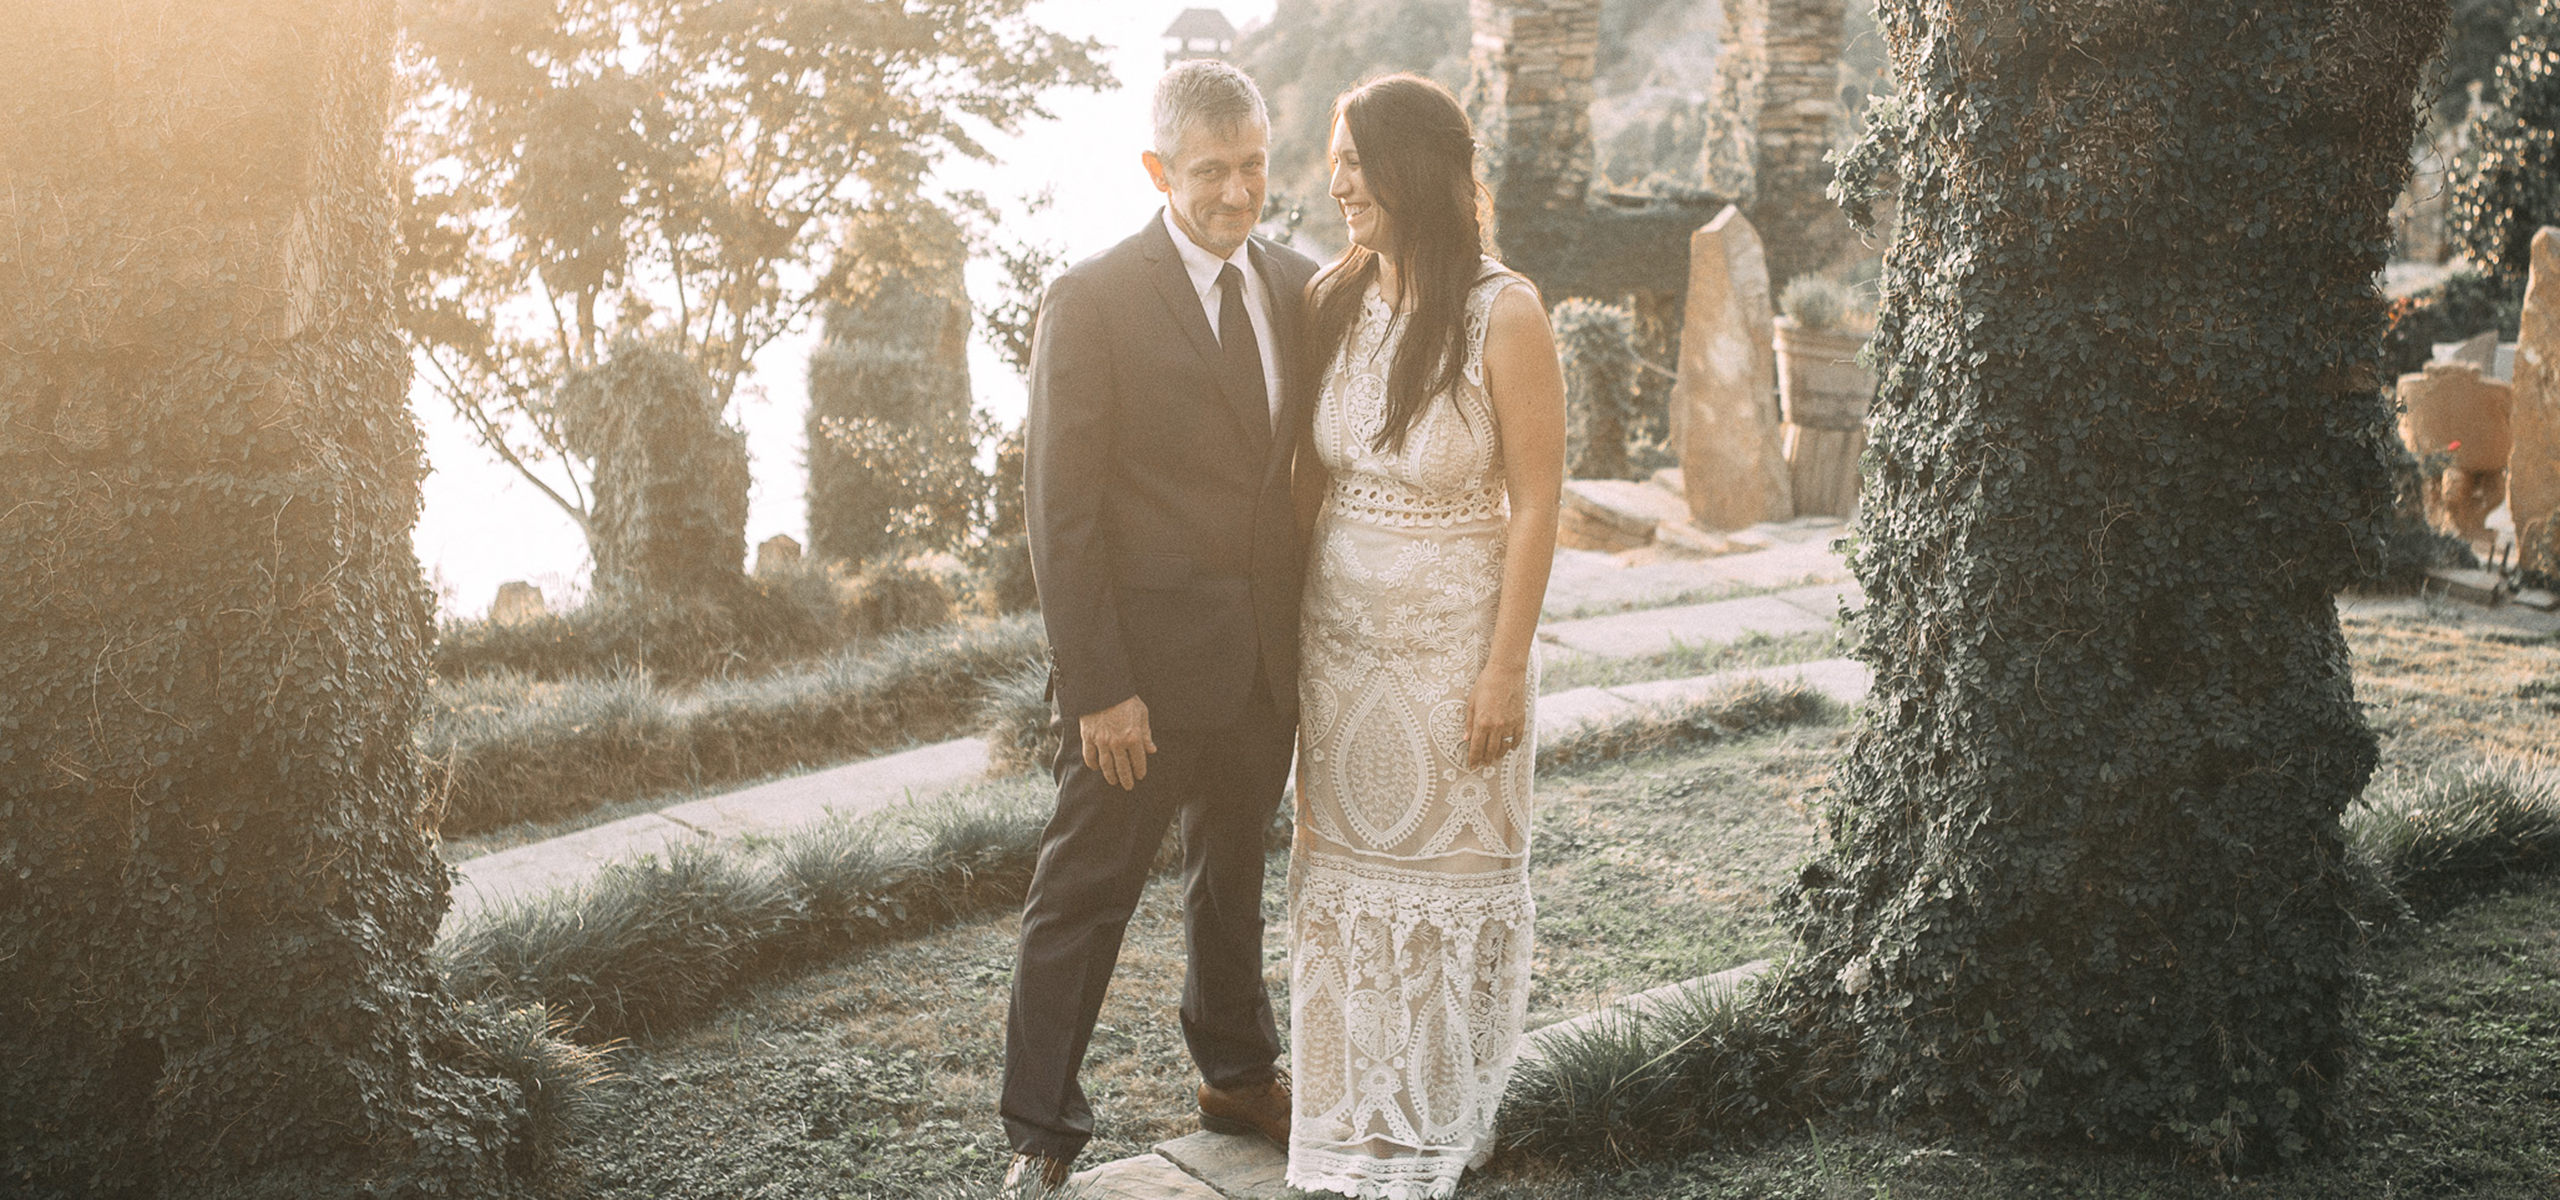 Palm Springs California Wedding Photography + Elopement Photography